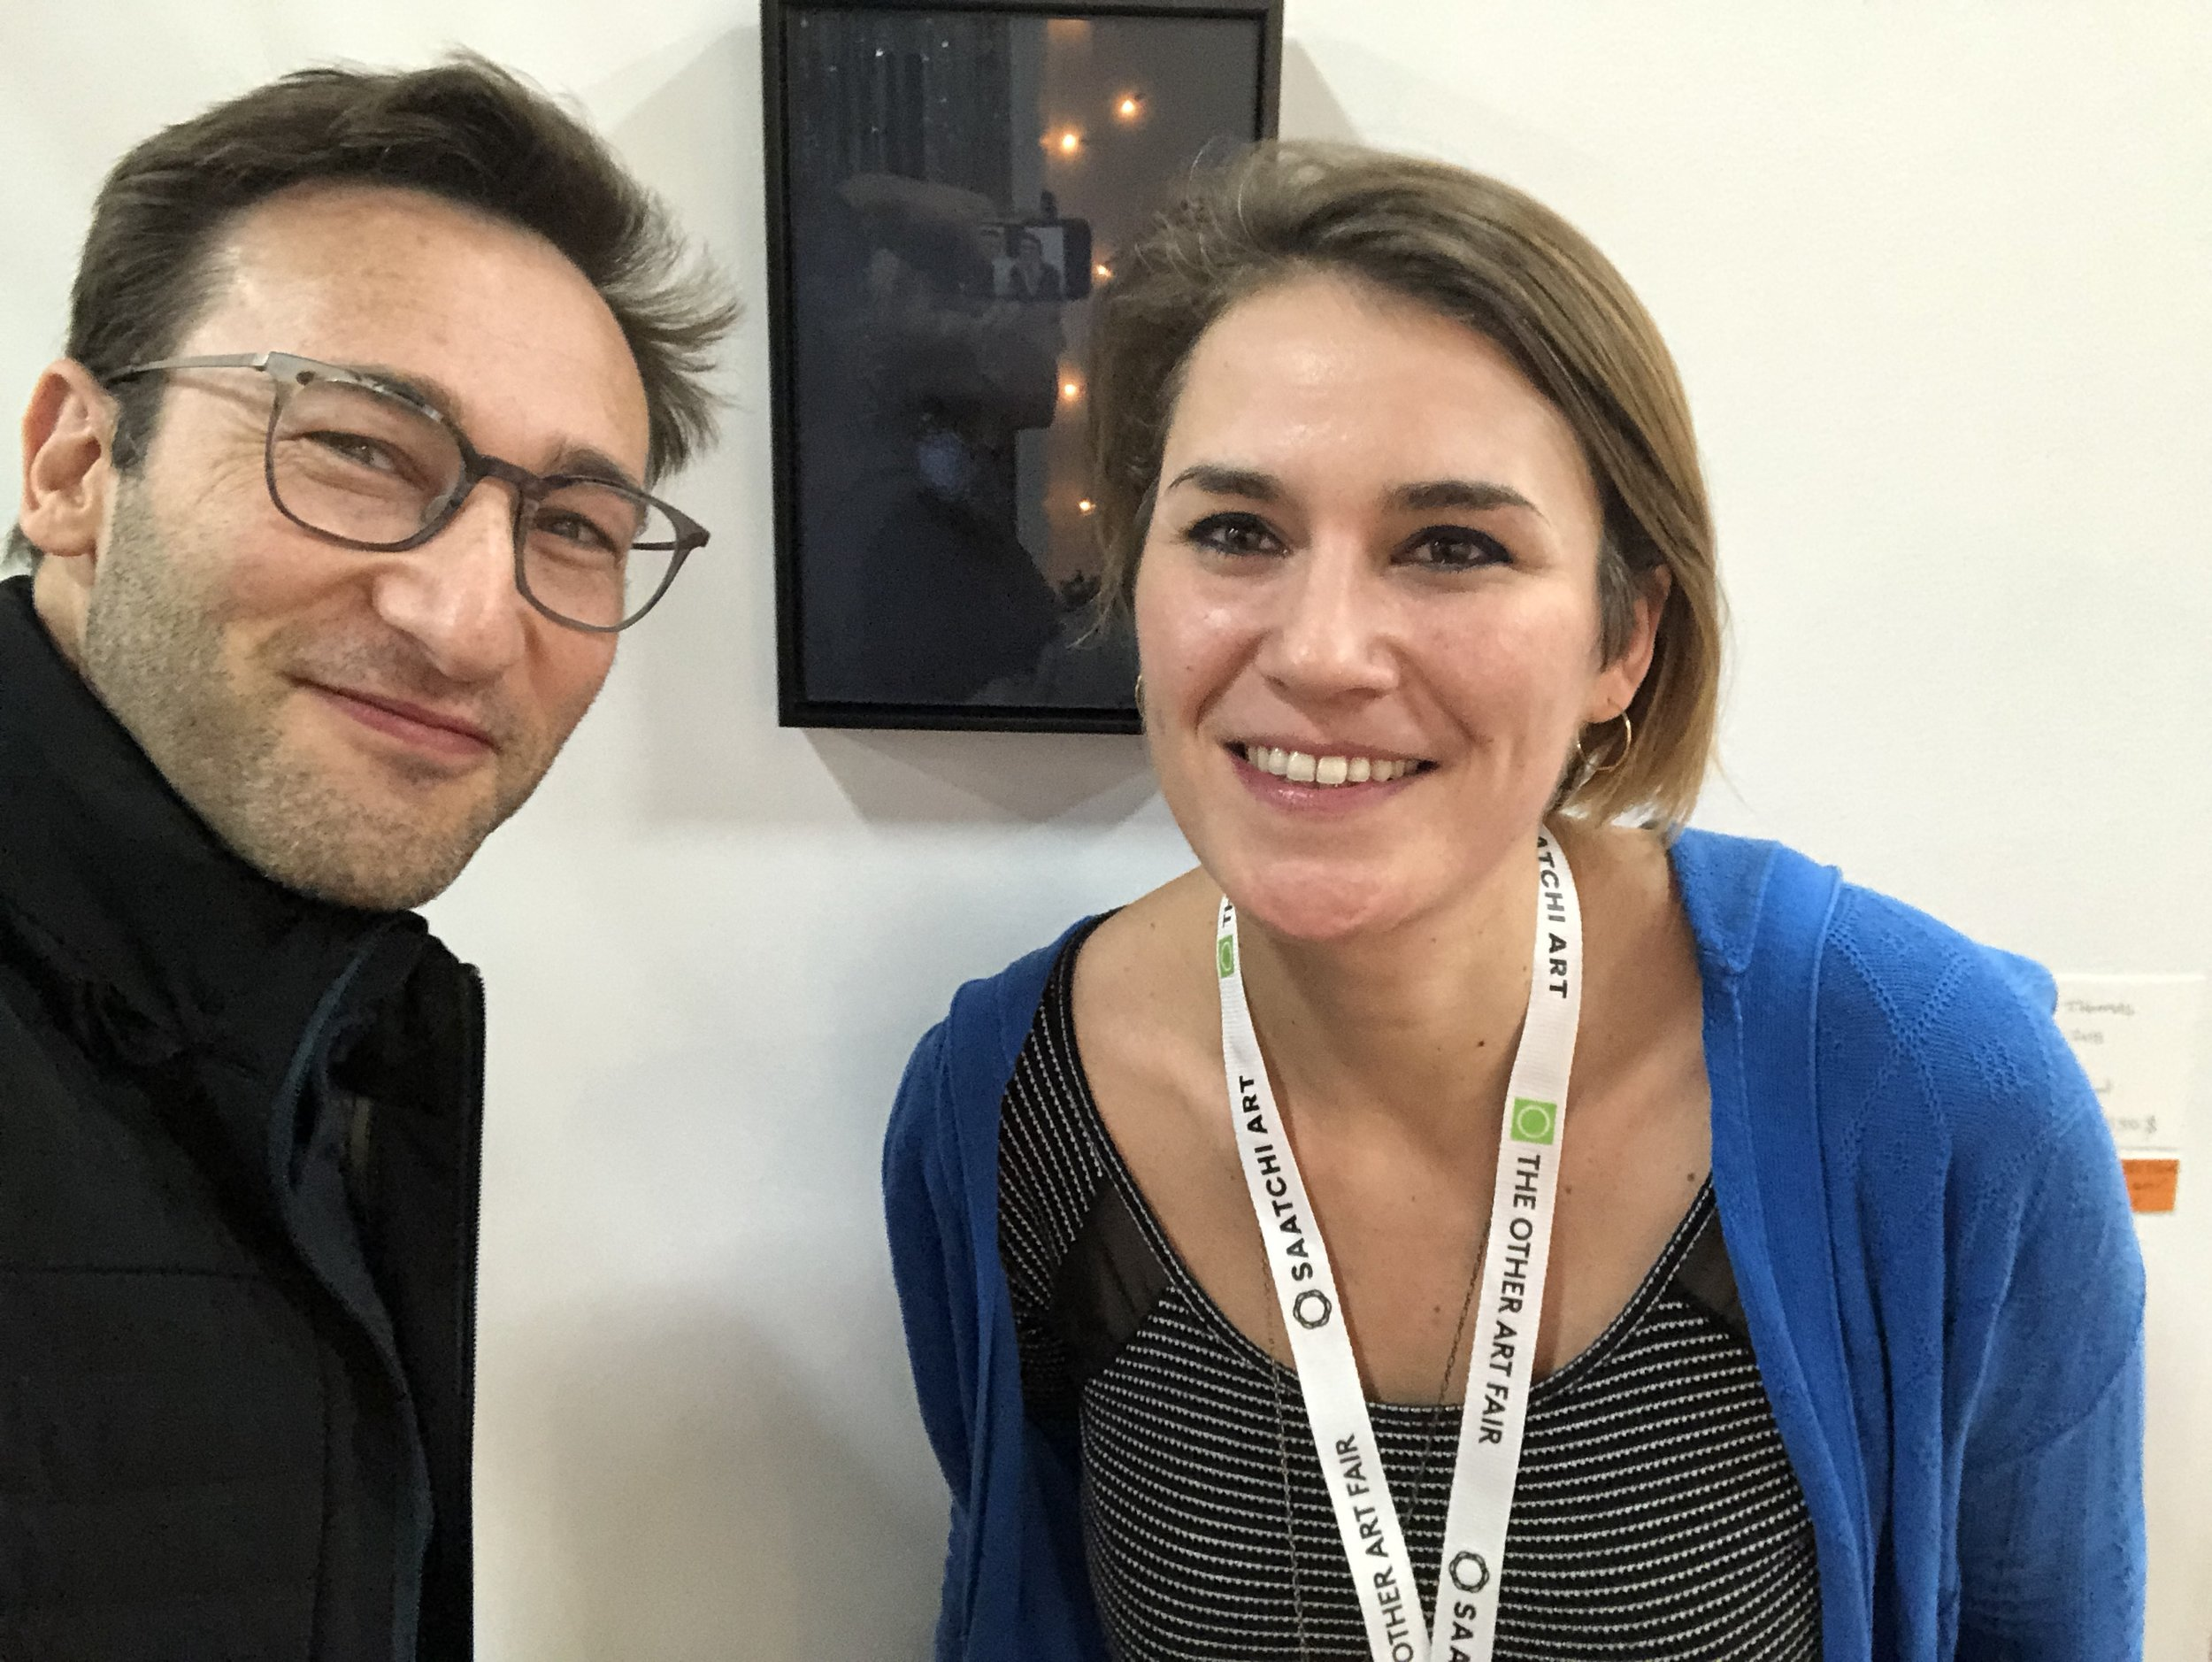 Meeting withSimon Sinek - Collector of a limited edition of Lemon, the nights